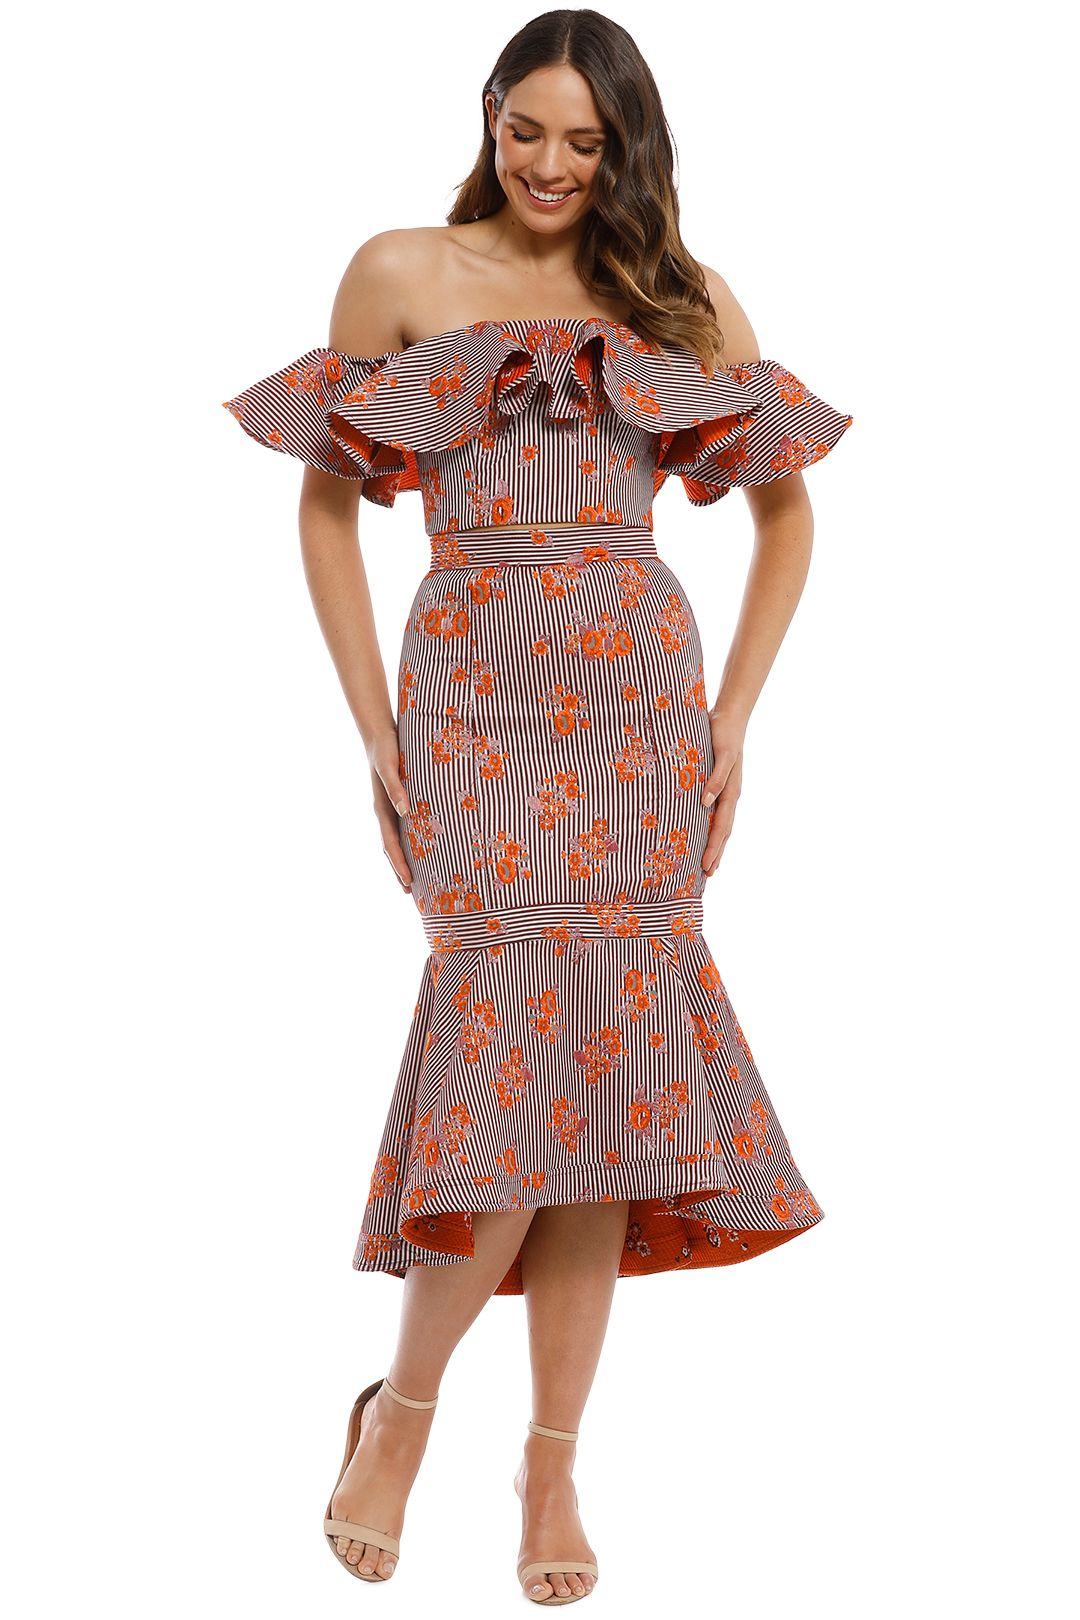 Keepsake The Label - Fixation Top and Skirt Set - Orange Print - Front